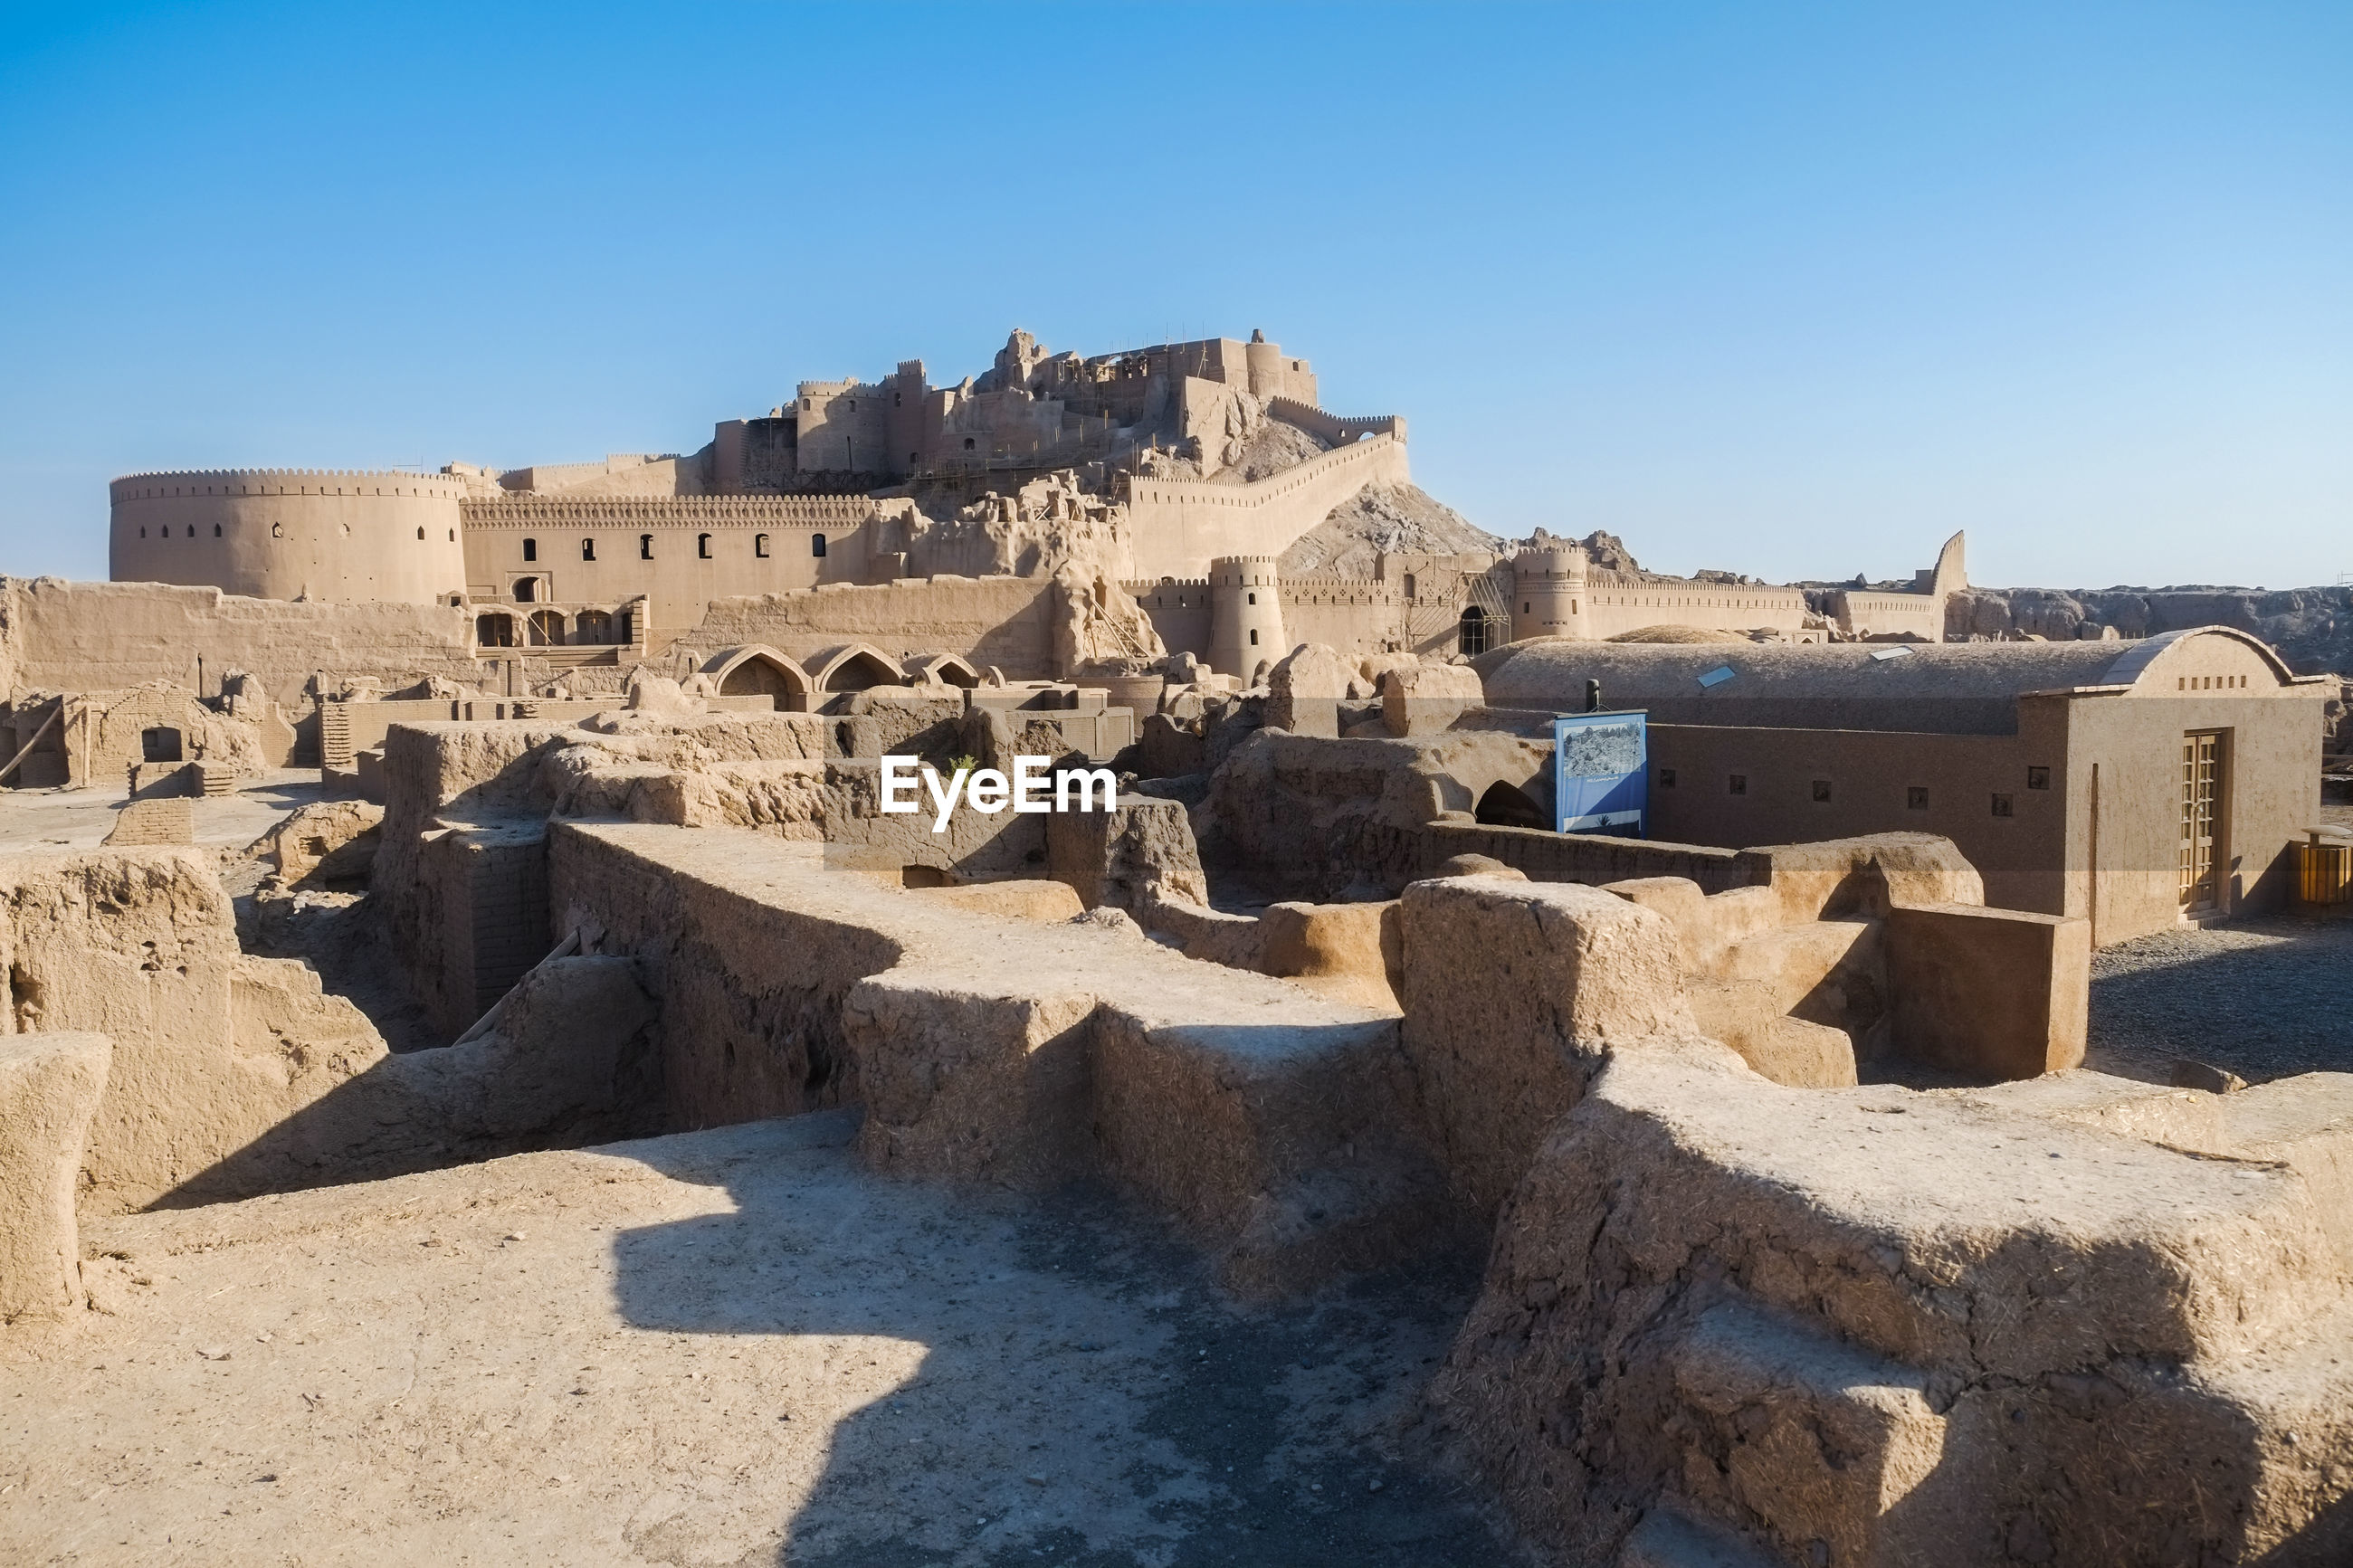 Landscape view of arg e bam,ruin and ancient persian historical site.famous landmark in kerman,iran.